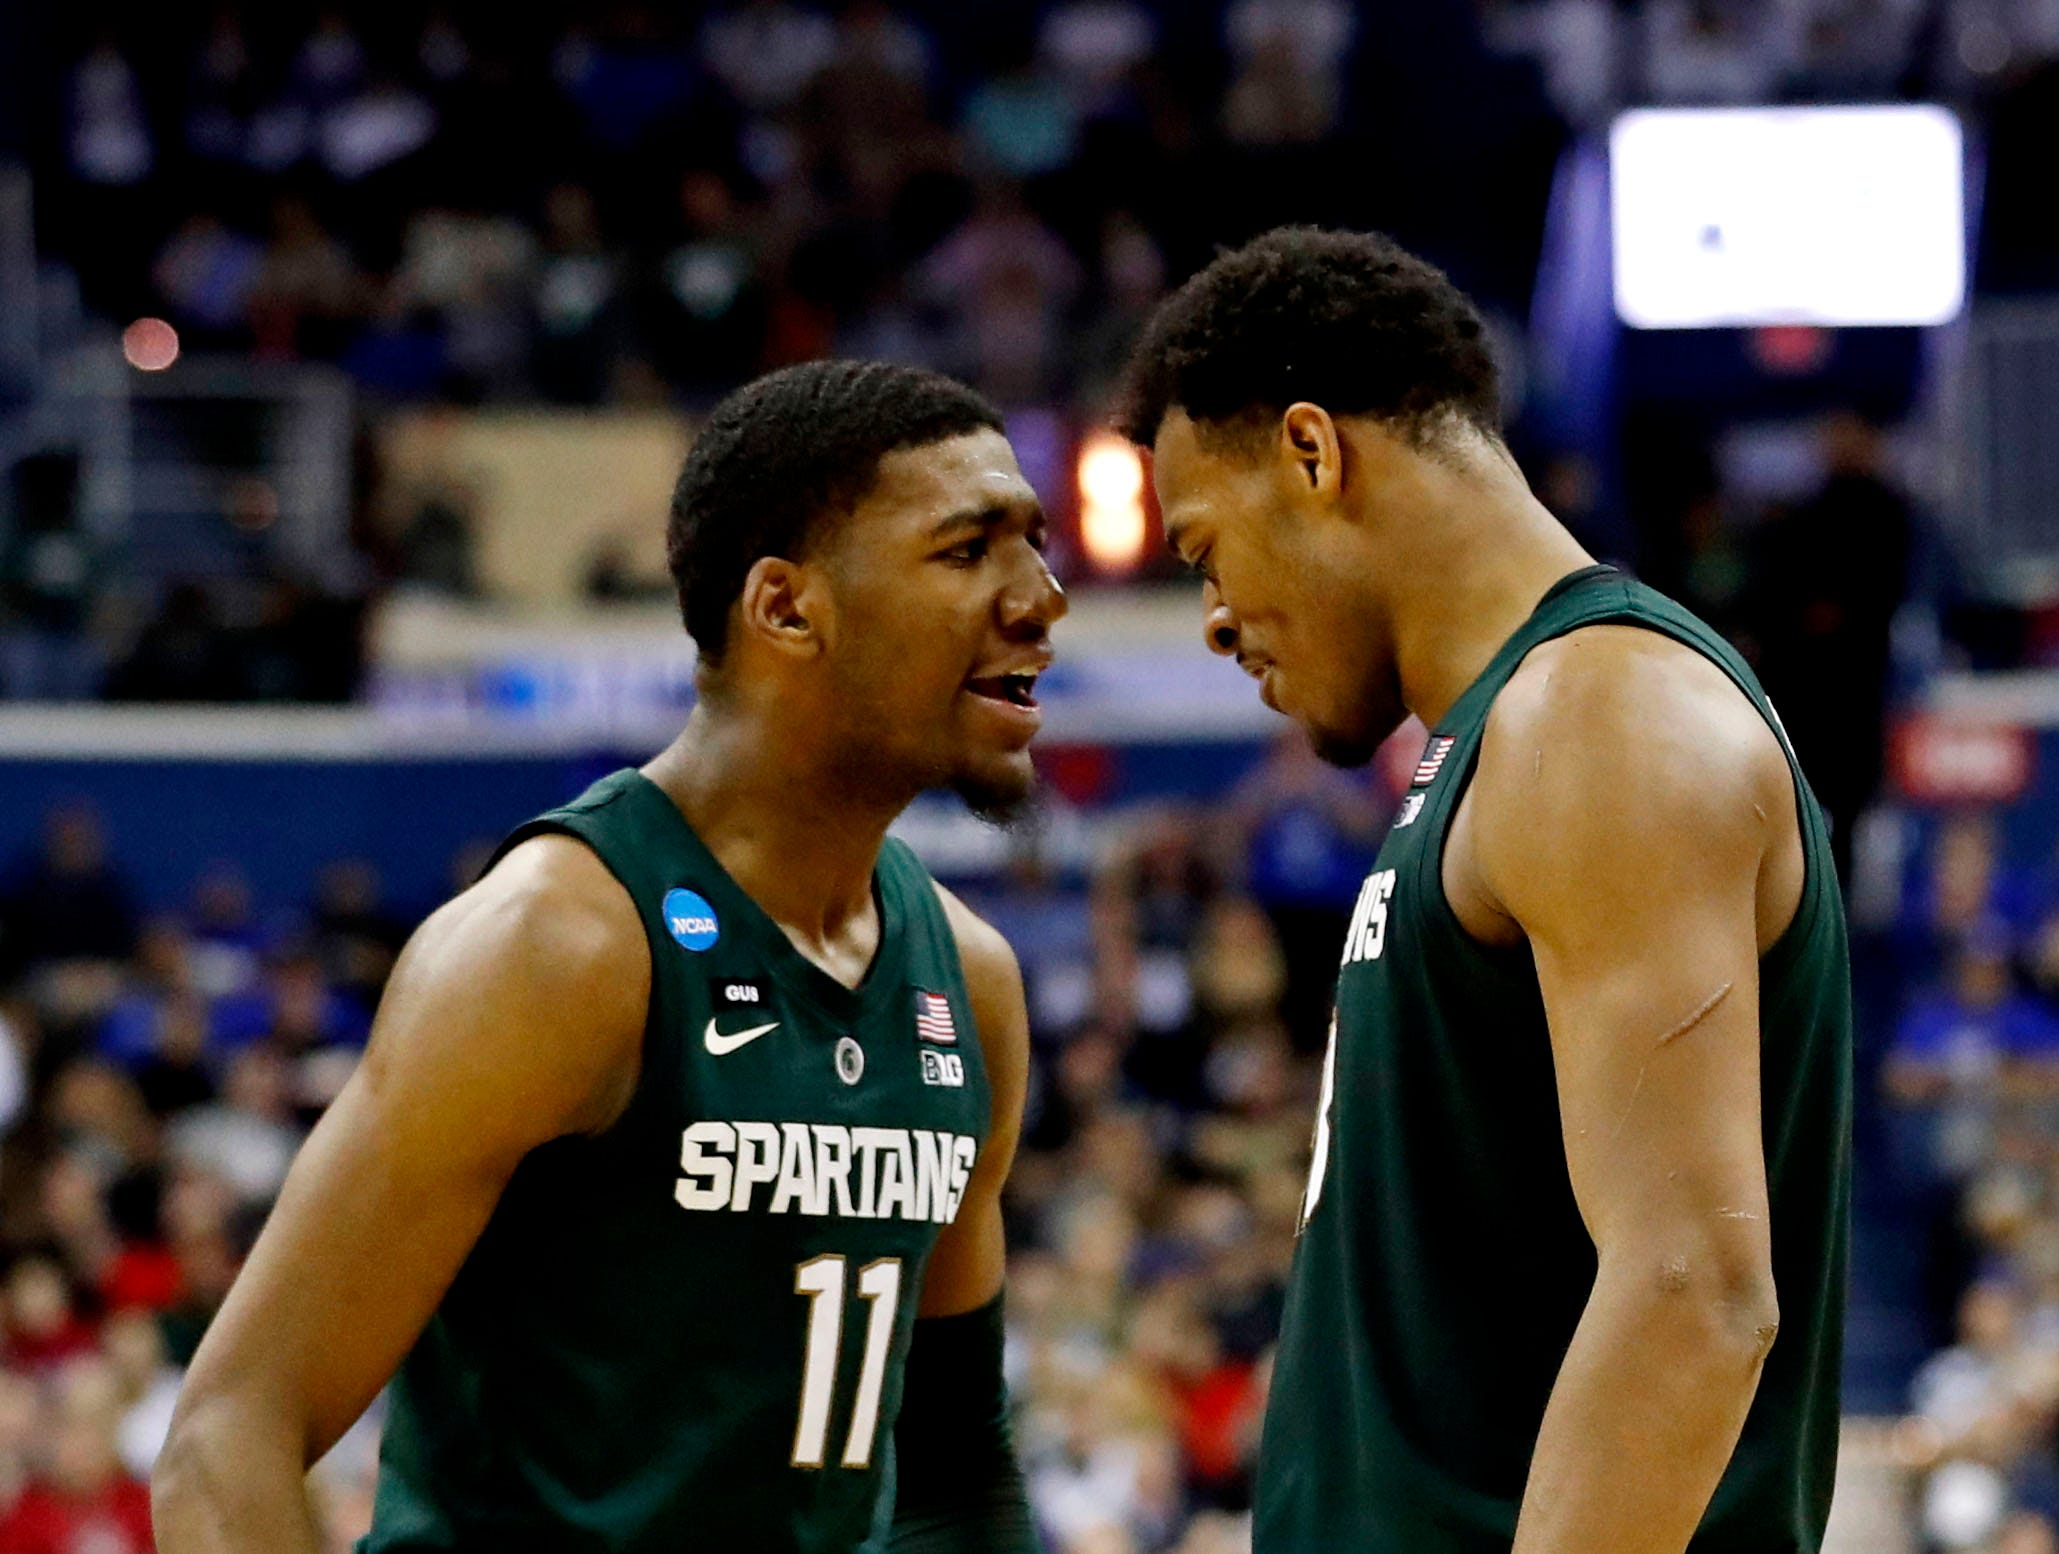 Mar 31, 2019; Washington, DC, USA; Michigan State Spartans forward Xavier Tillman (23) reacts with forward Aaron Henry (11) during the second half against the Duke Blue Devils in the championship game of the east regional of the 2019 NCAA Tournament at Capital One Arena. Mandatory Credit: Geoff Burke-USA TODAY Sports